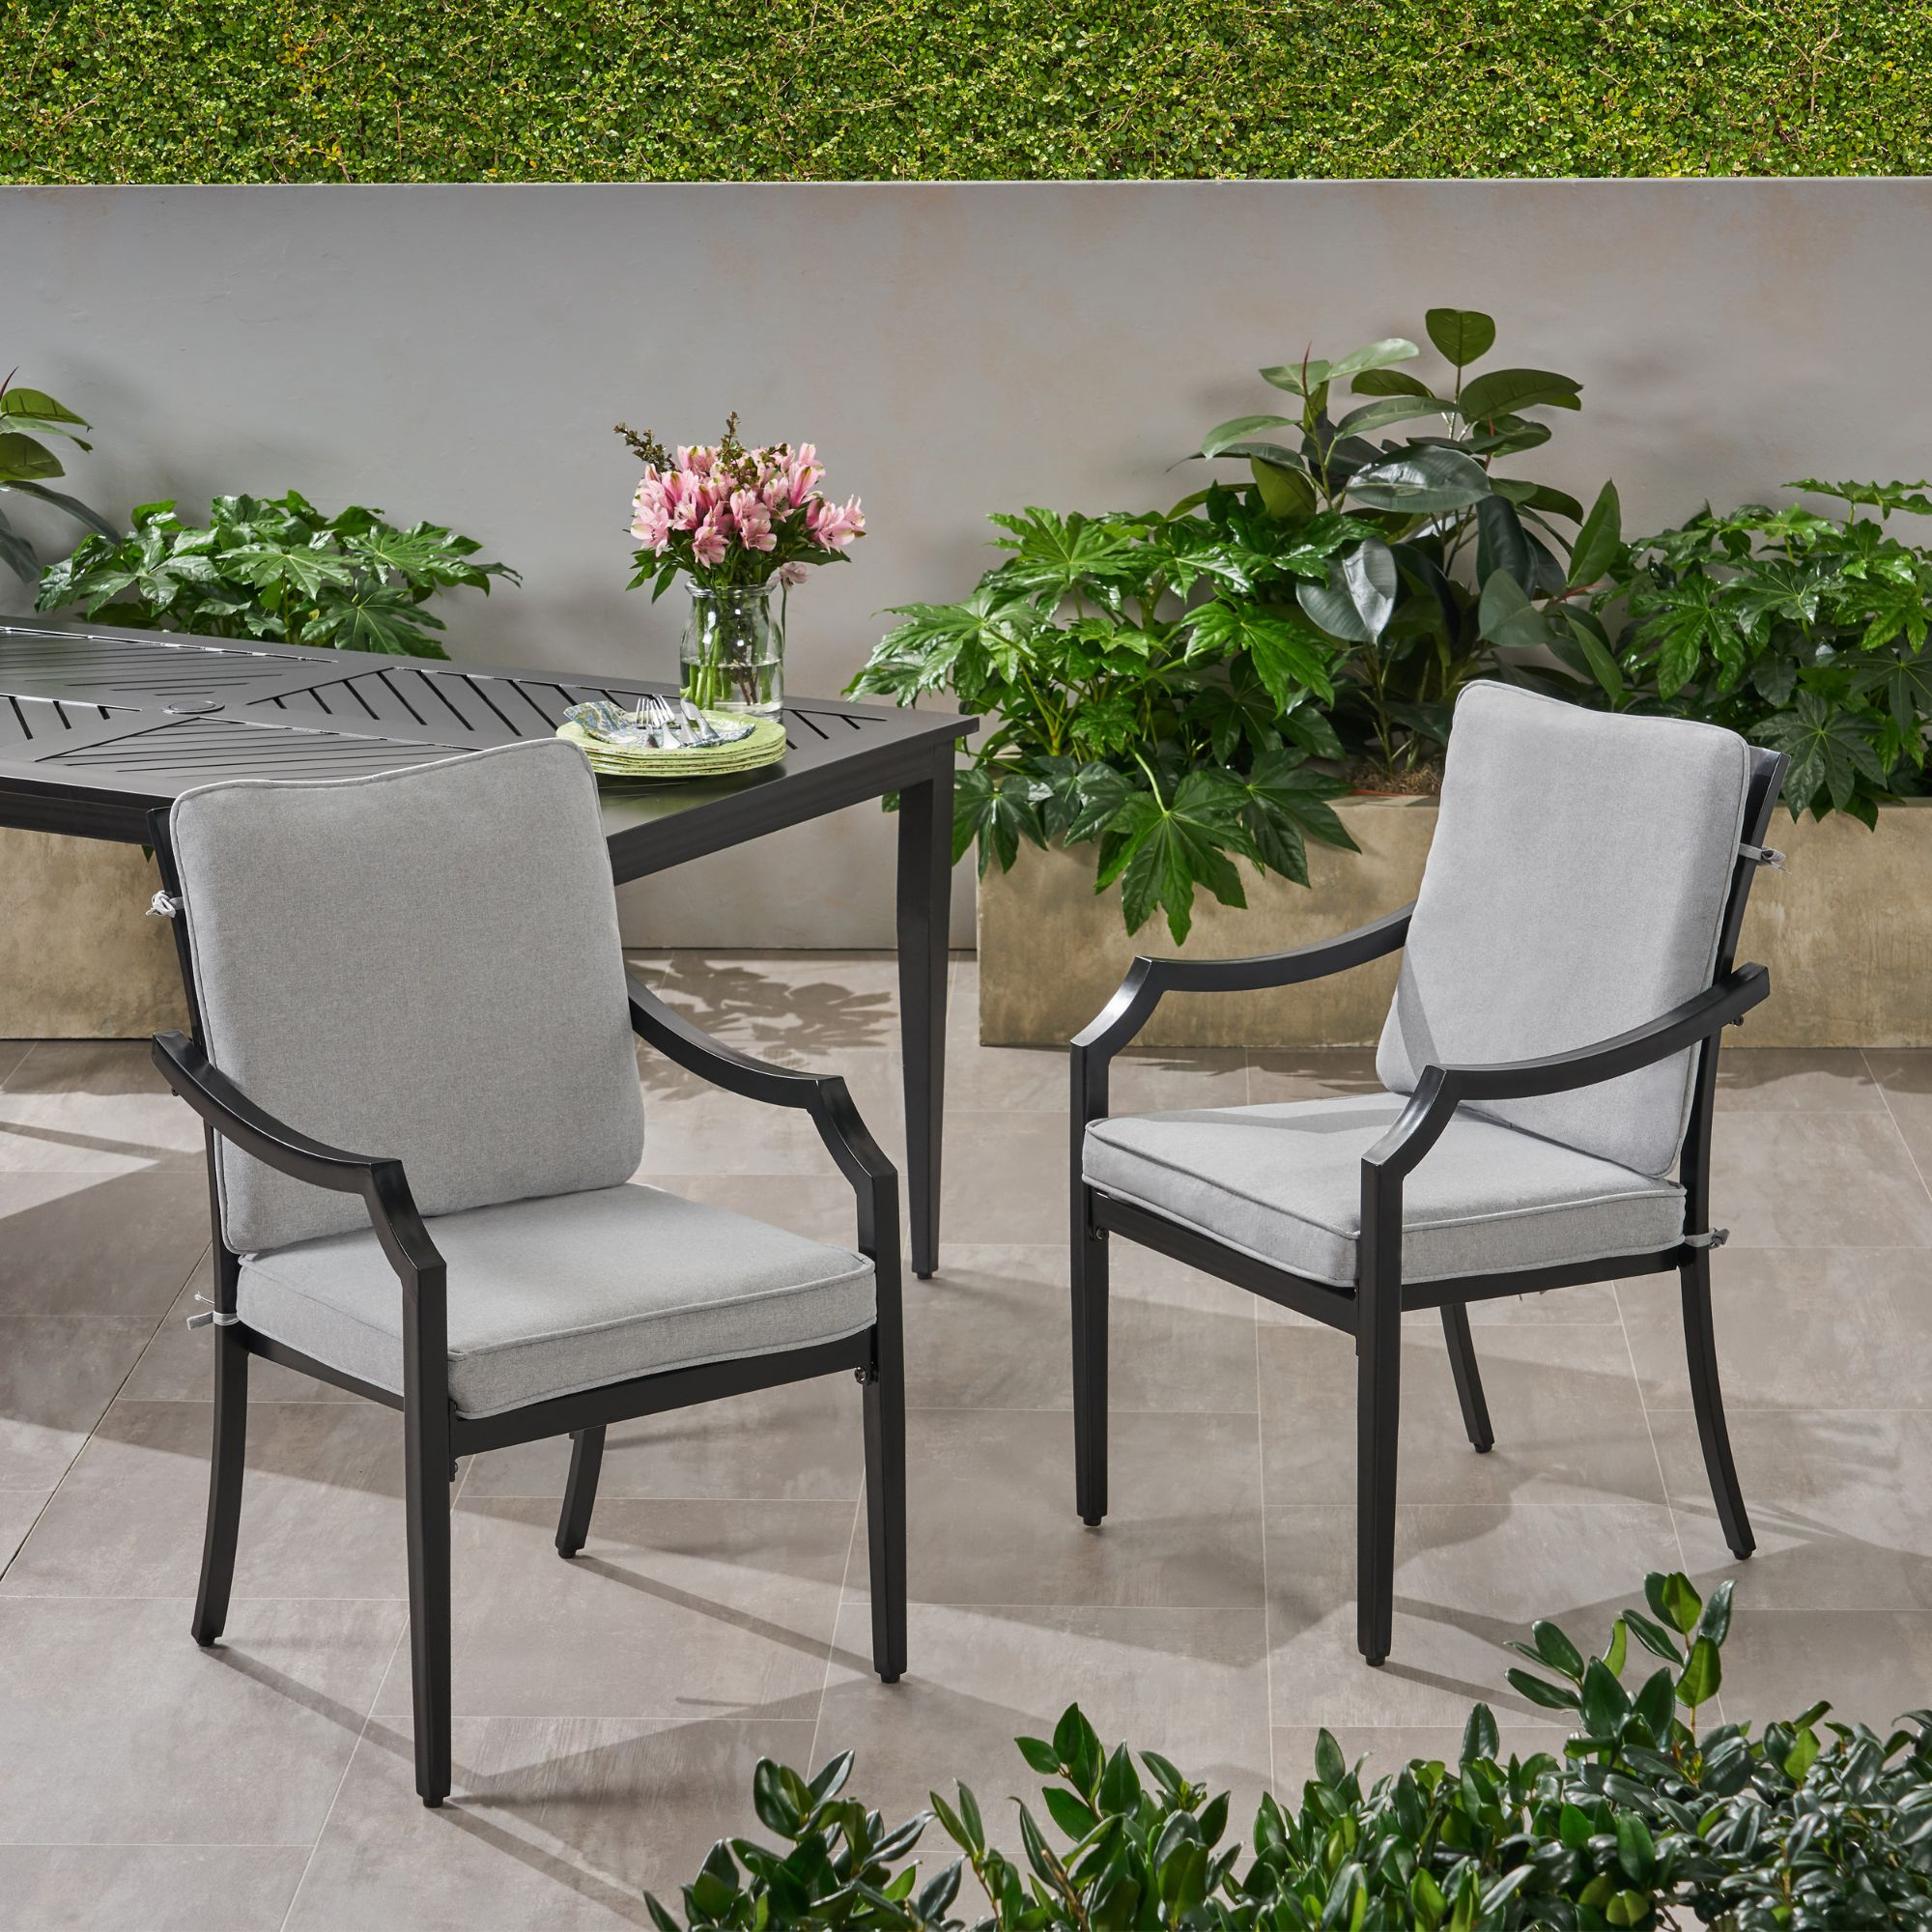 Set Of 2 Black Contemporary Outdoor Furniture Patio Dining Chairs Abalone Gray Cushions Walmart Com Walmart Com